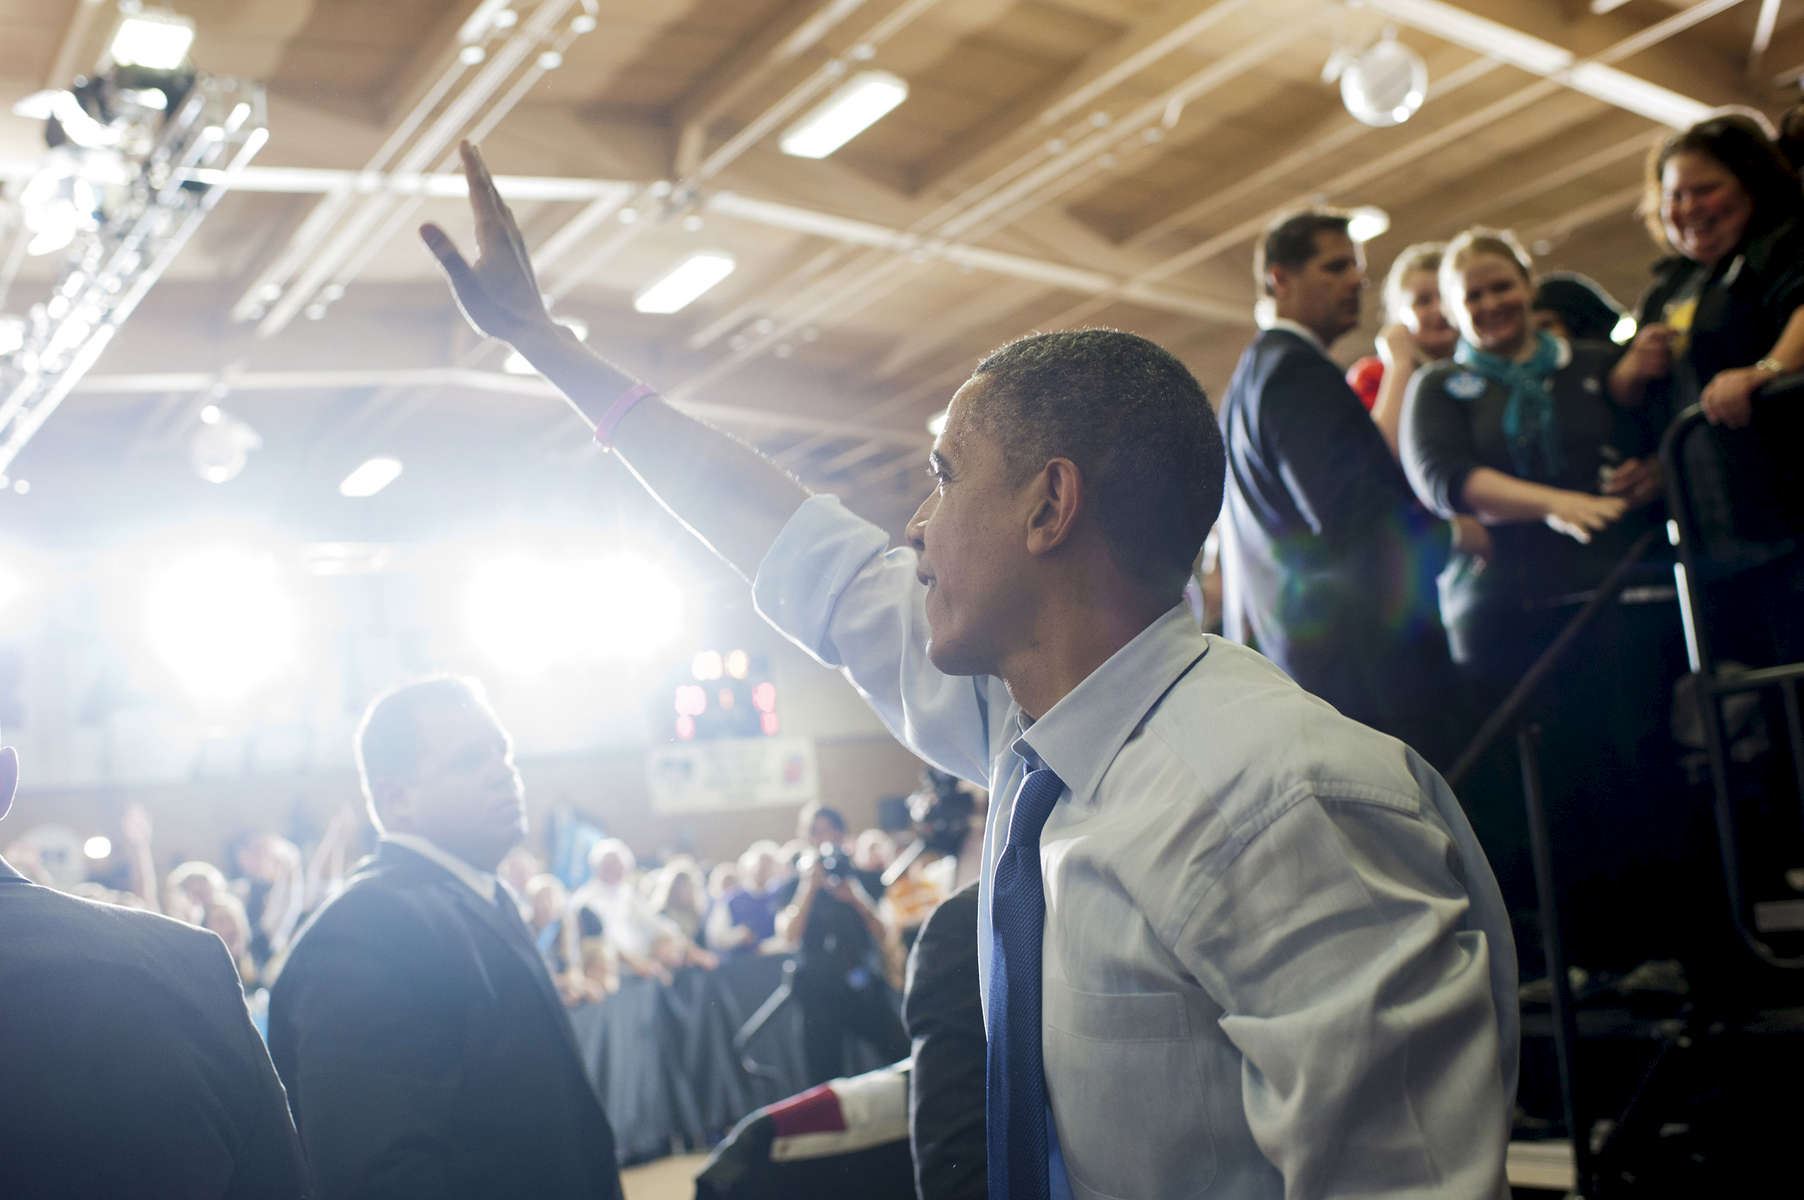 October 17, 2012 - Mount Vernon, IA: President Barack Obama waves to supporters after a campaign event at Cornell College in Mount Vernon, IA.  (Scout Tufankjian for Obama for America/Polaris)